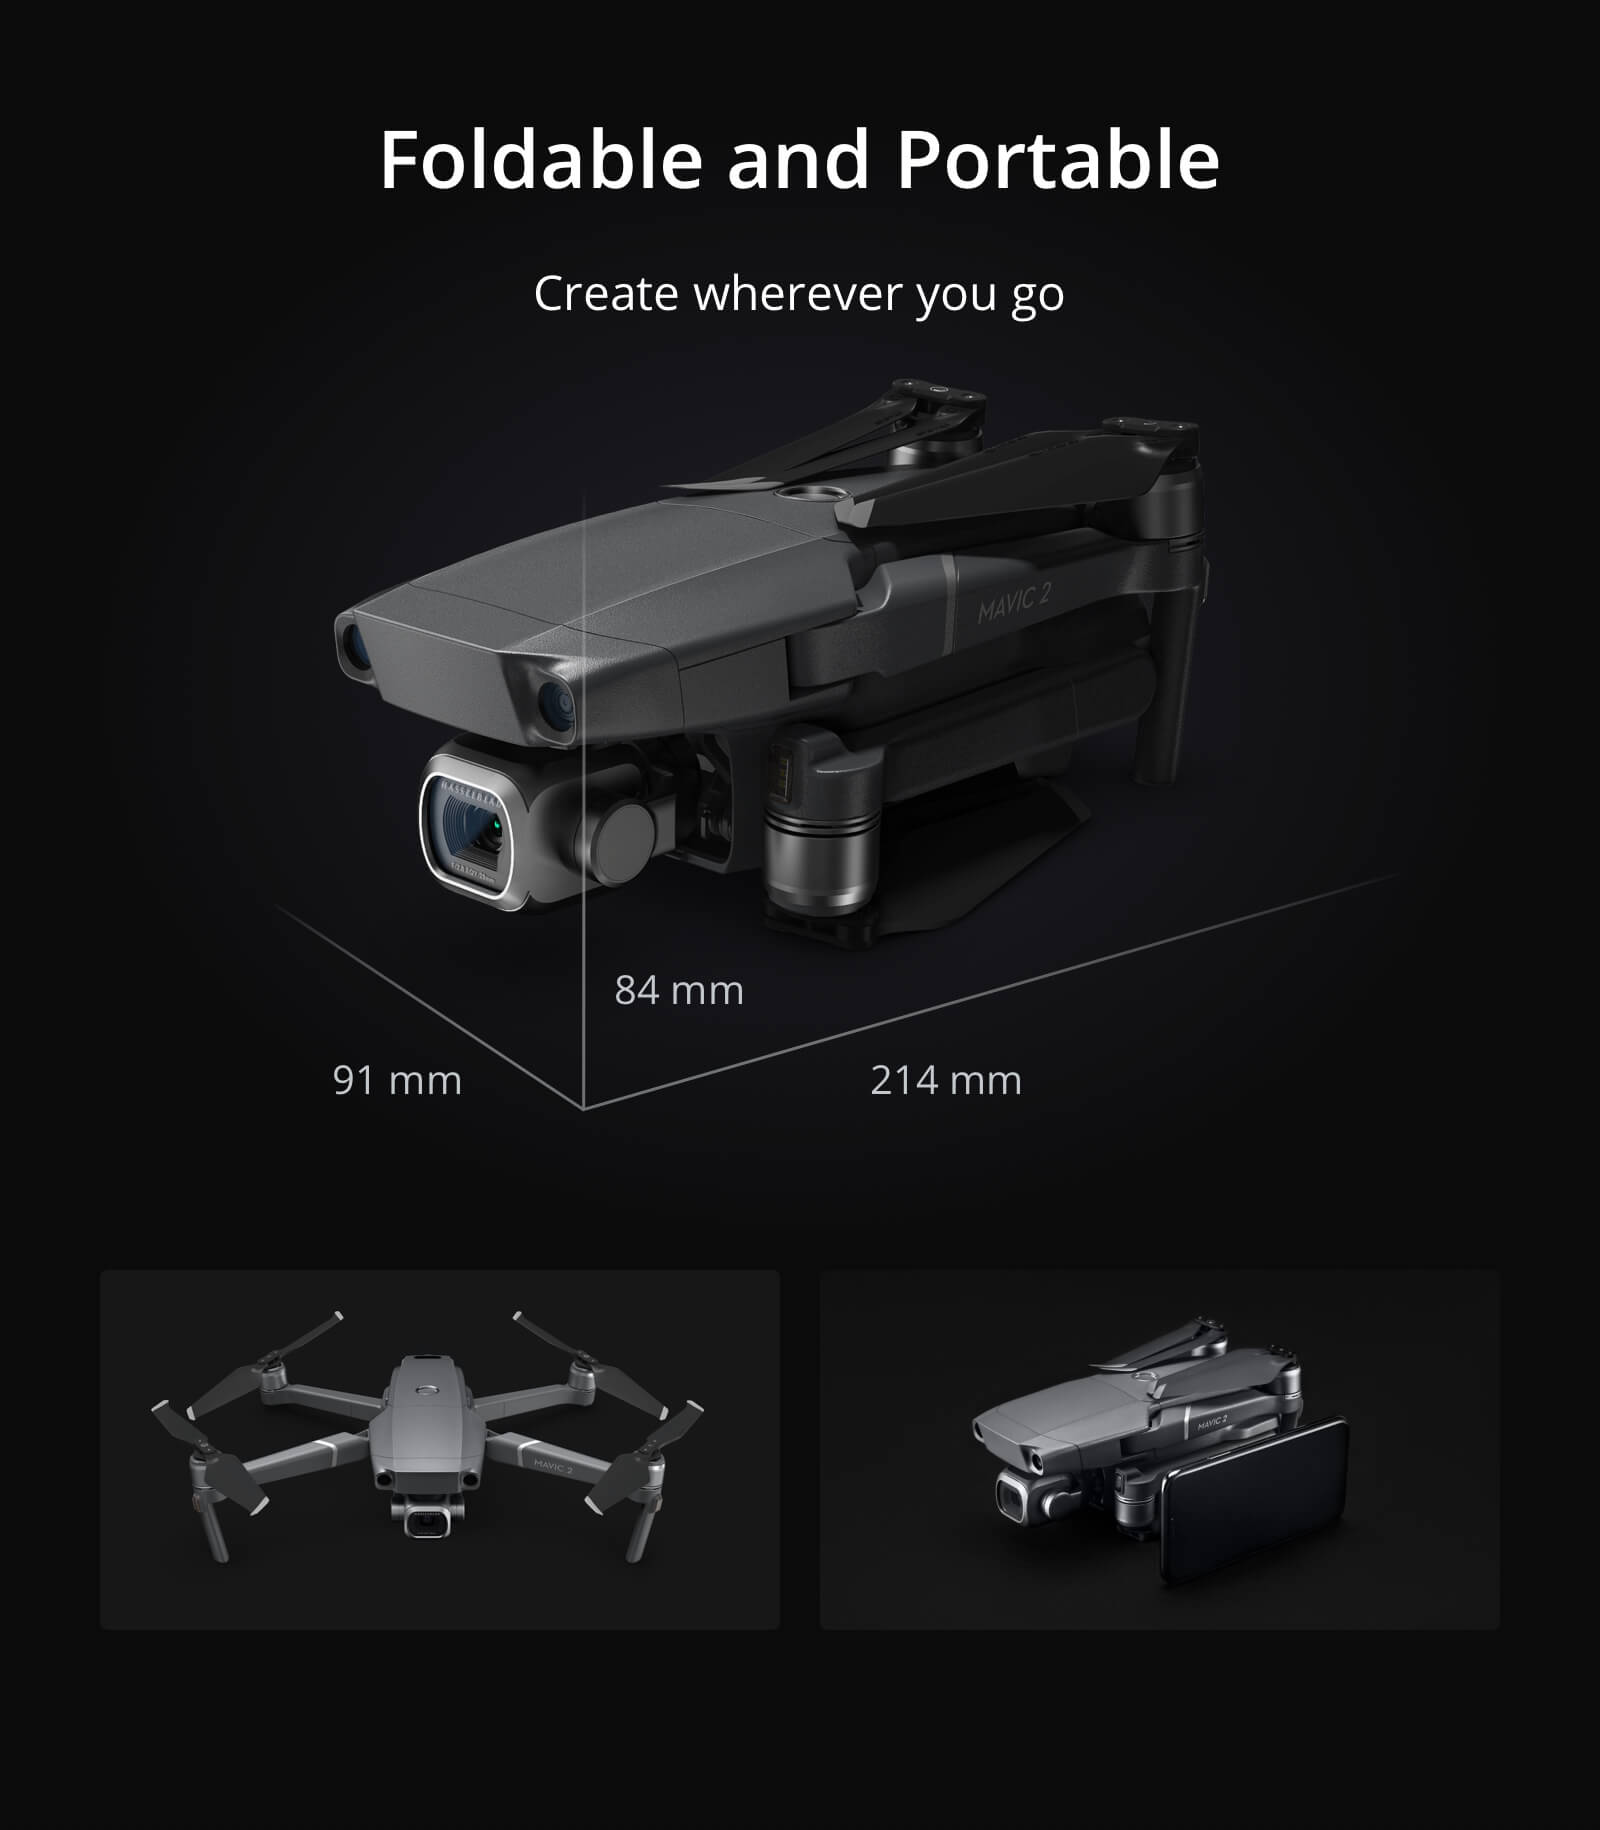 Mavic 2 Zoom Quadcopter - 12MP, 2x Optical Zoom 14